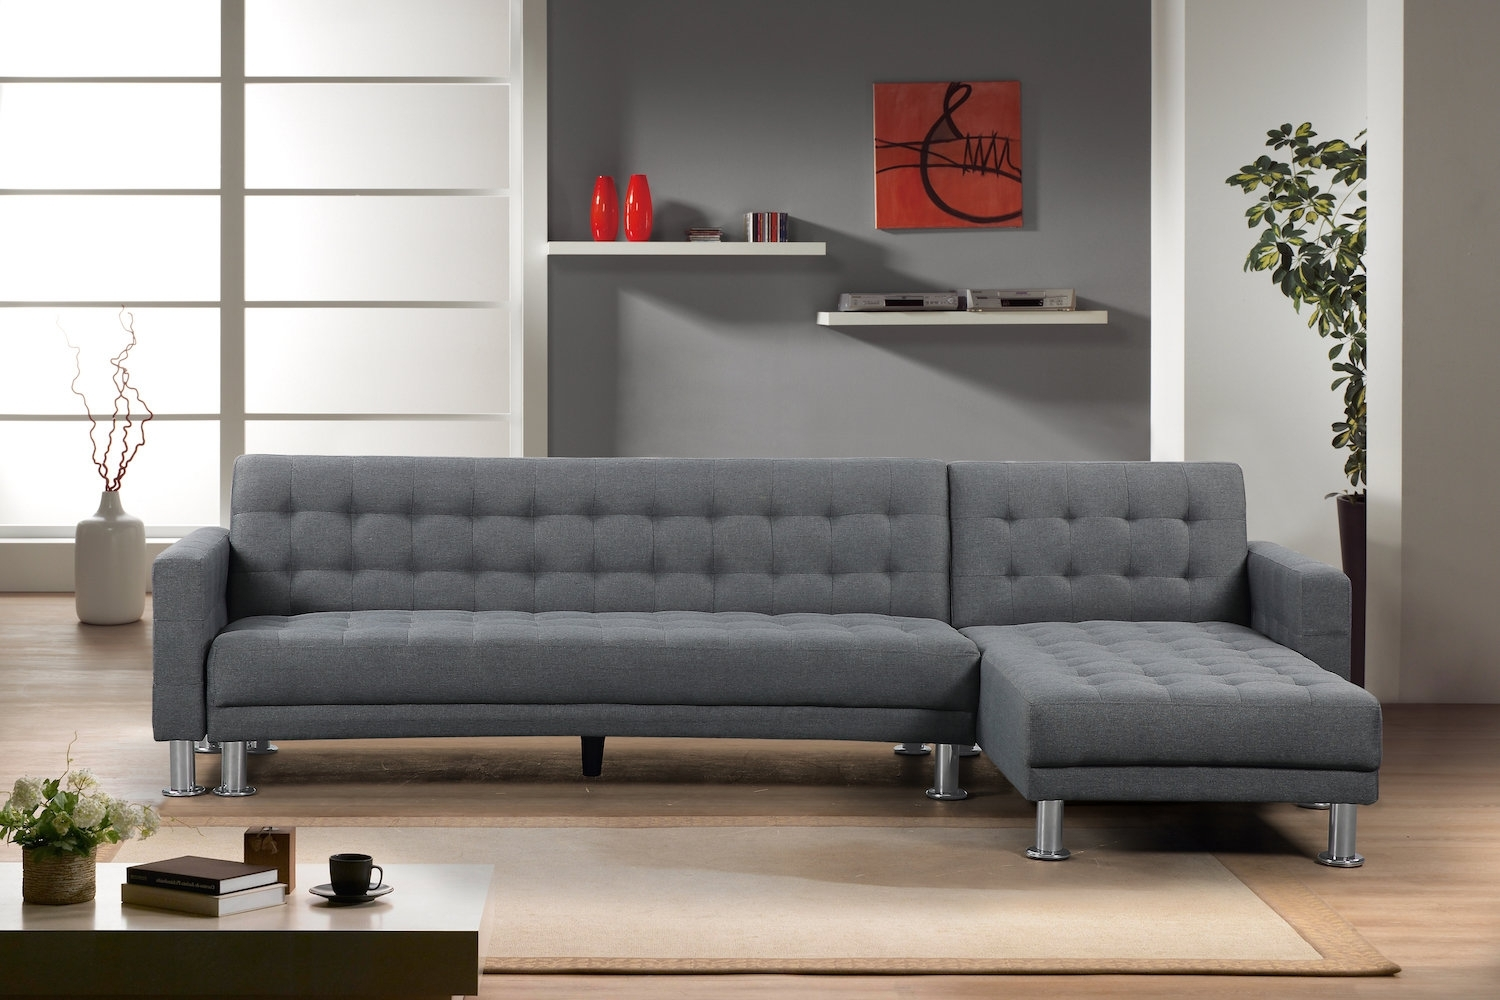 Brayden Studio Lacaille Sleeper Sectional & Reviews | Wayfair Inside Marissa Ii 3 Piece Sectionals (View 18 of 25)